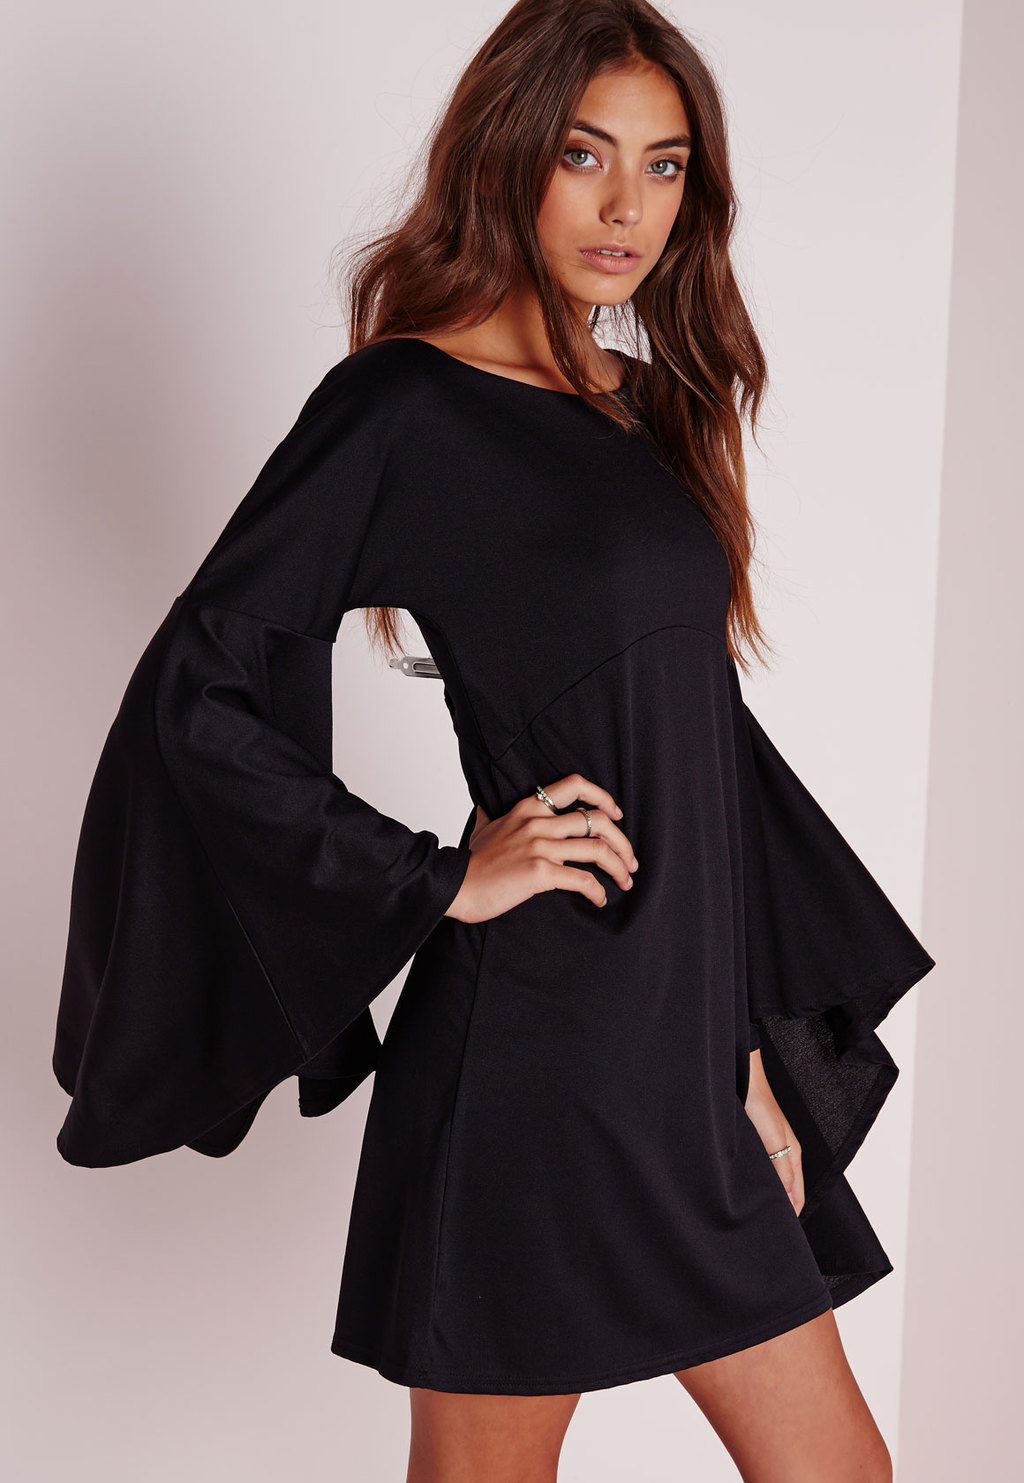 Flared Sleeve Swing Dress Black, Black - style: shift; length: mid thigh; neckline: round neck; sleeve style: bell sleeve; pattern: plain; predominant colour: black; occasions: evening; fit: body skimming; fibres: polyester/polyamide - stretch; sleeve length: long sleeve; pattern type: fabric; texture group: jersey - stretchy/drapey; season: a/w 2015; wardrobe: event